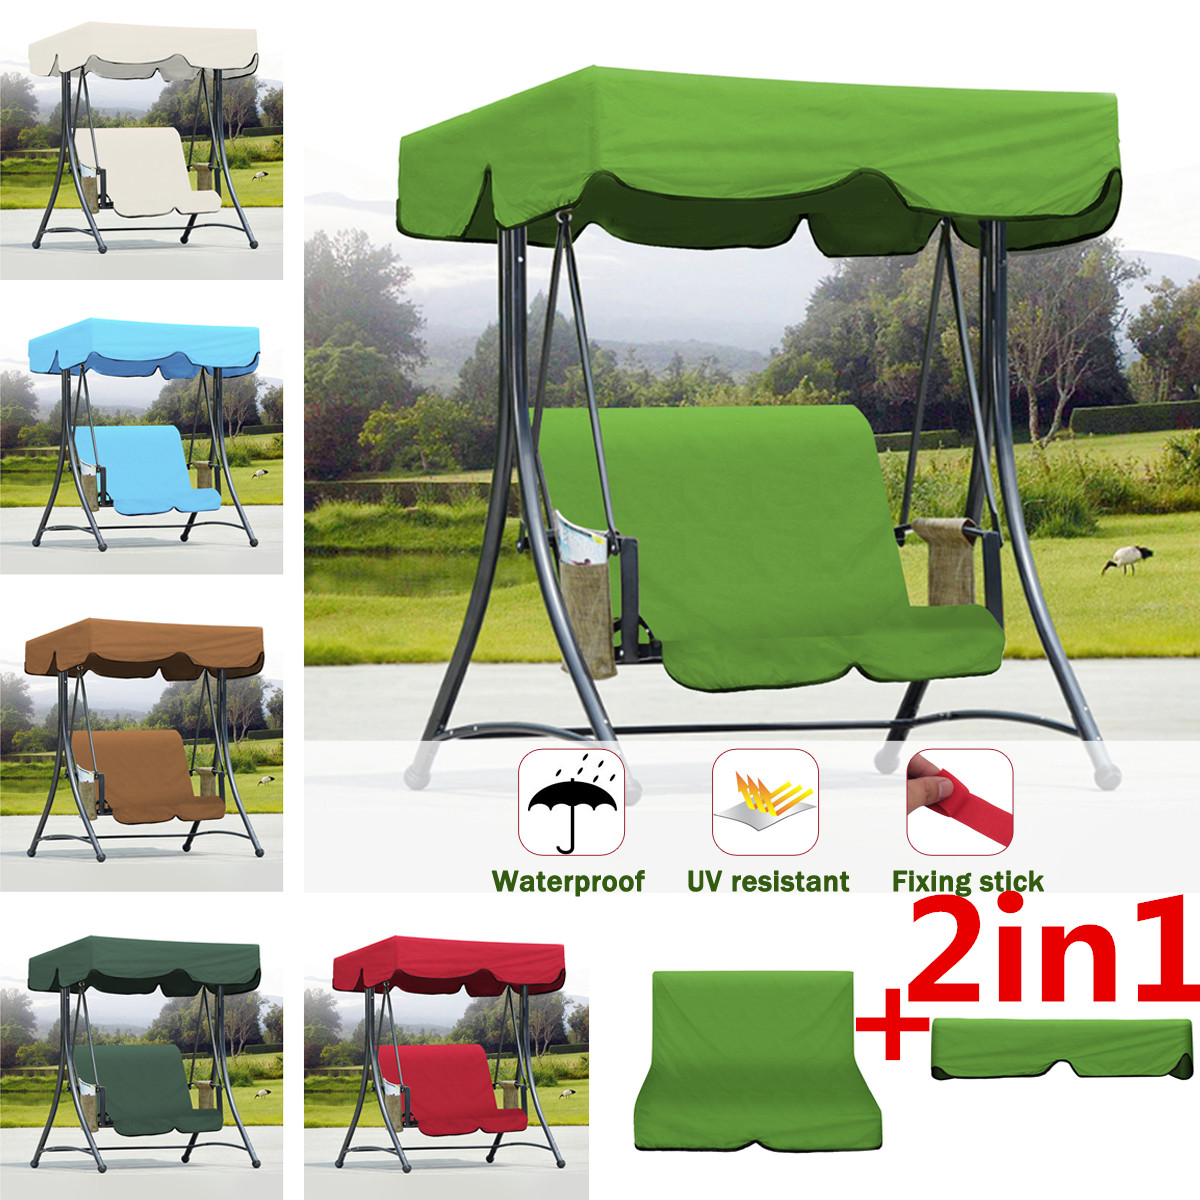 2Pcs Waterproof UV Resistant Swing Hammock Canopy+Chair Cushion Summer  Outdoor Indoor Garden Courtyard Tent Swing Top Cover In Hammocks From  Furniture On ...